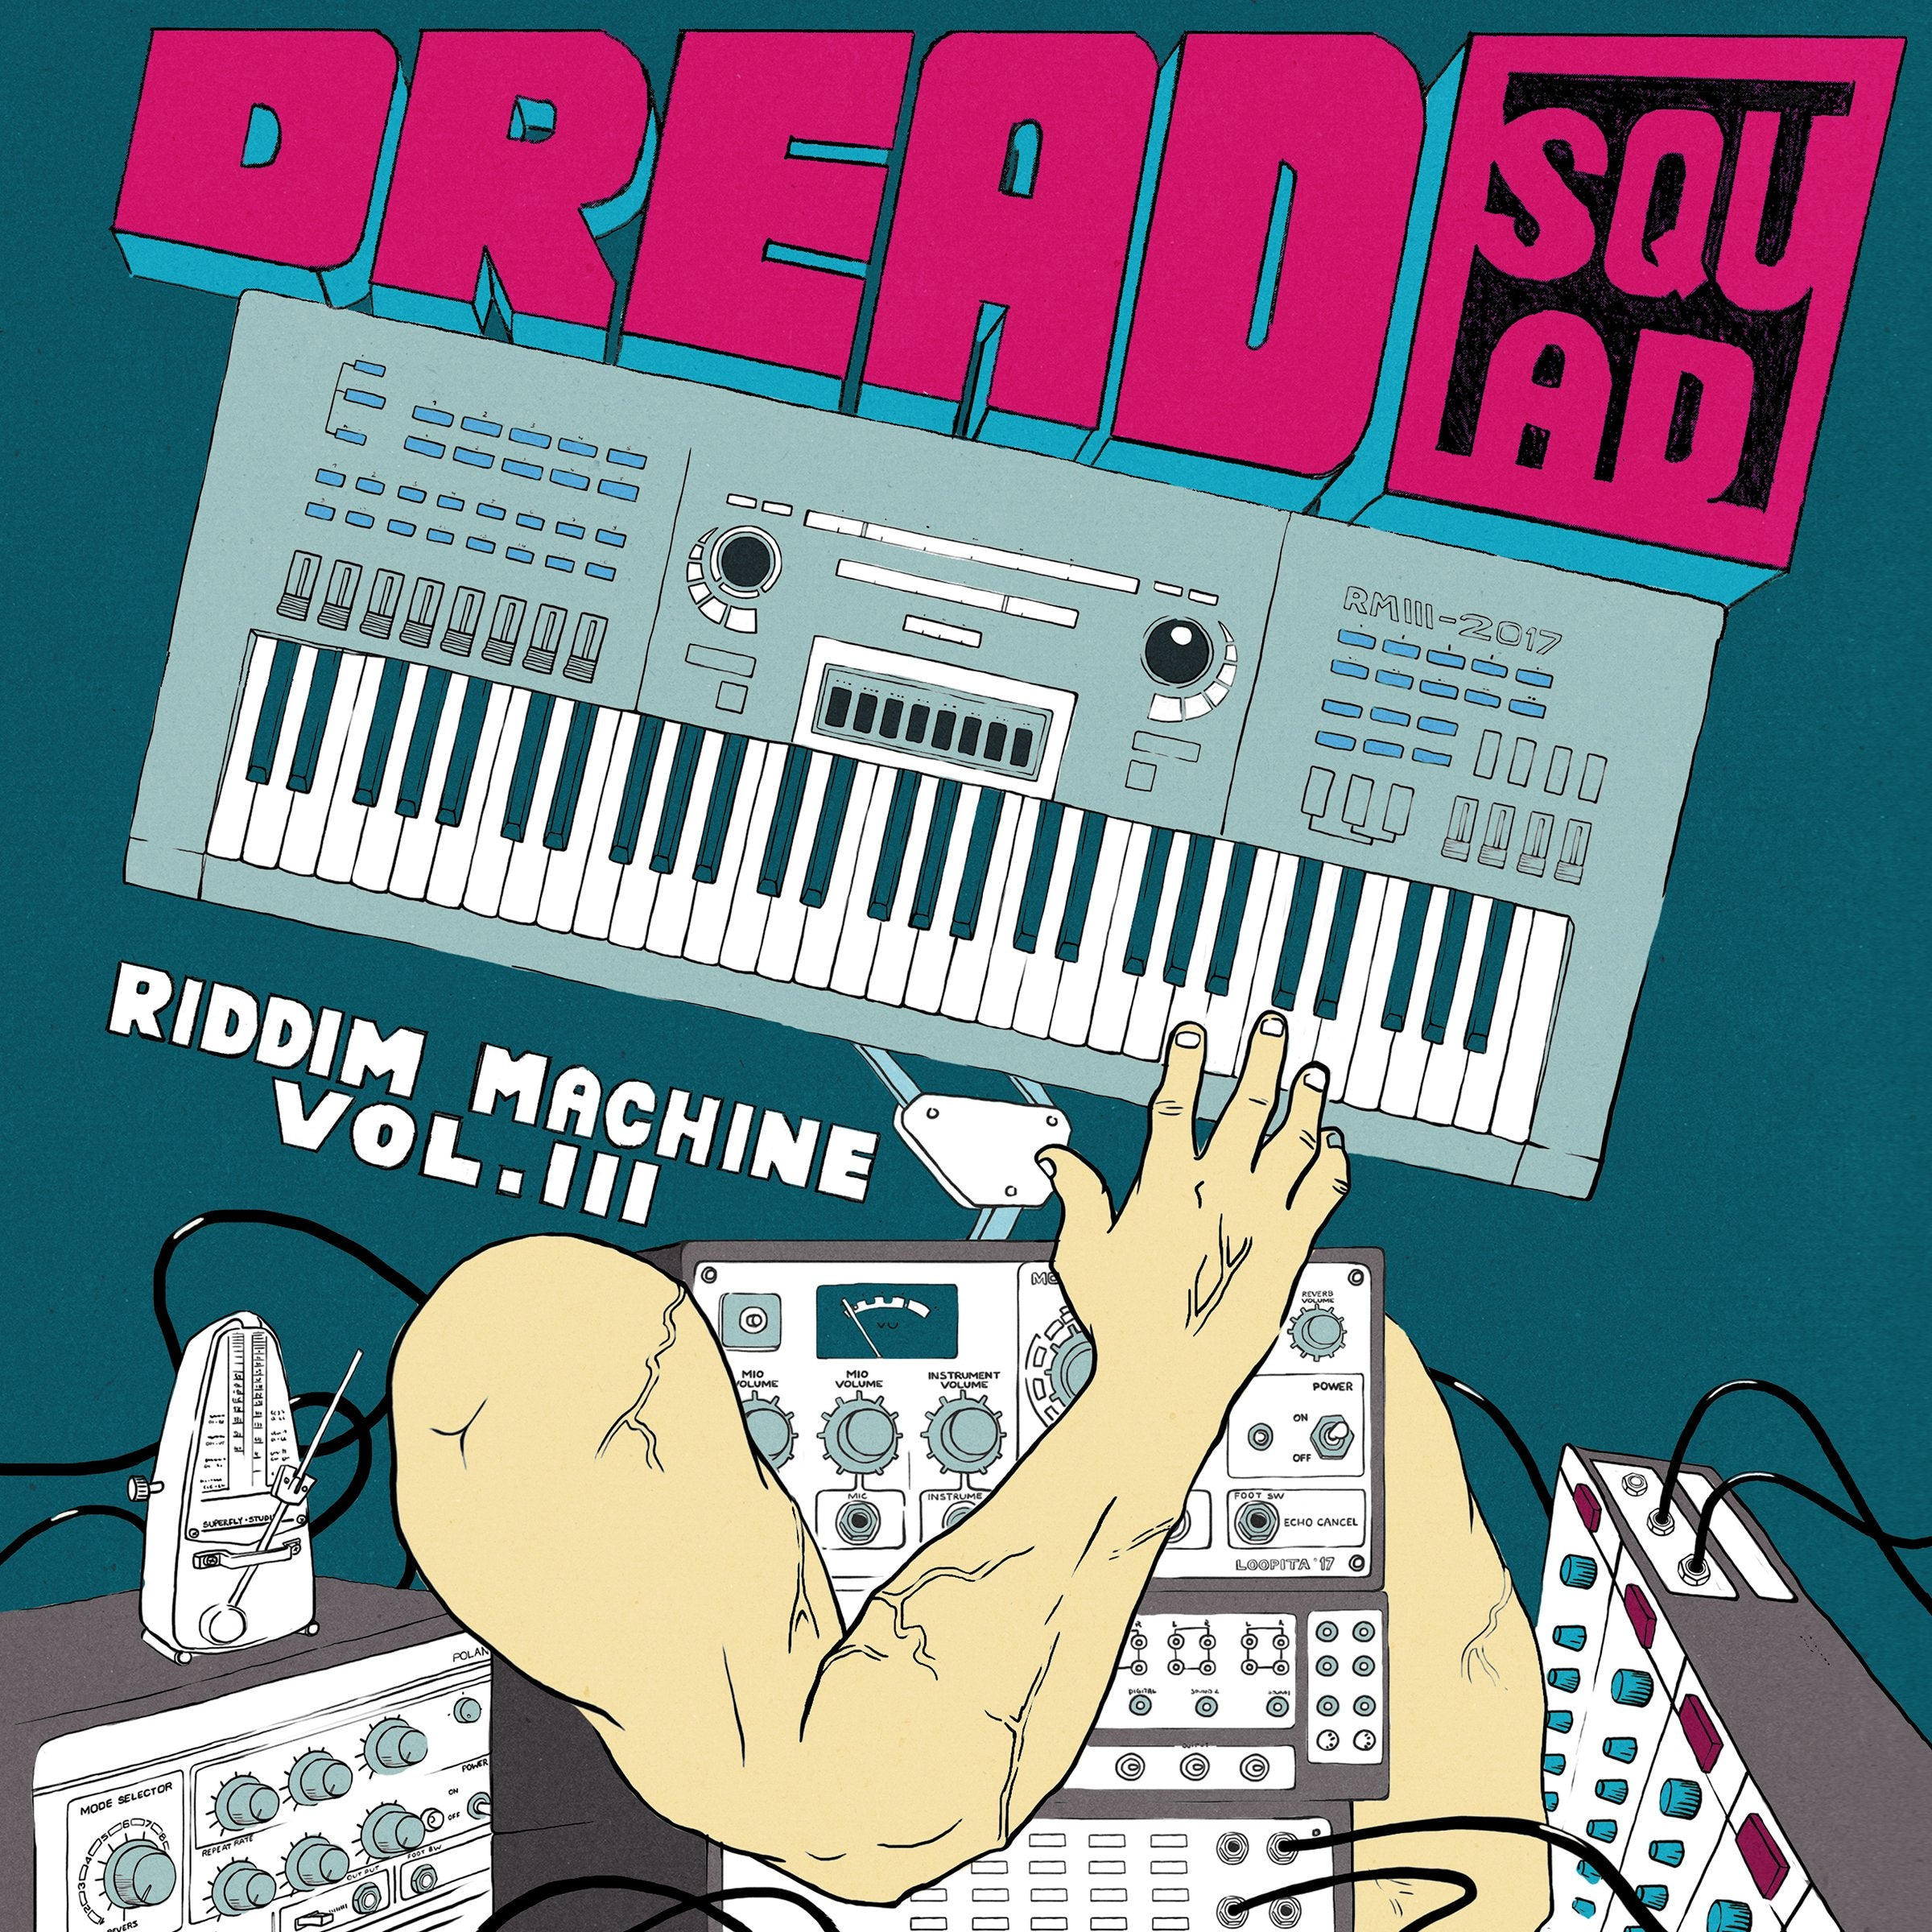 Dreadsquad - Riddim Machine Vol. 3